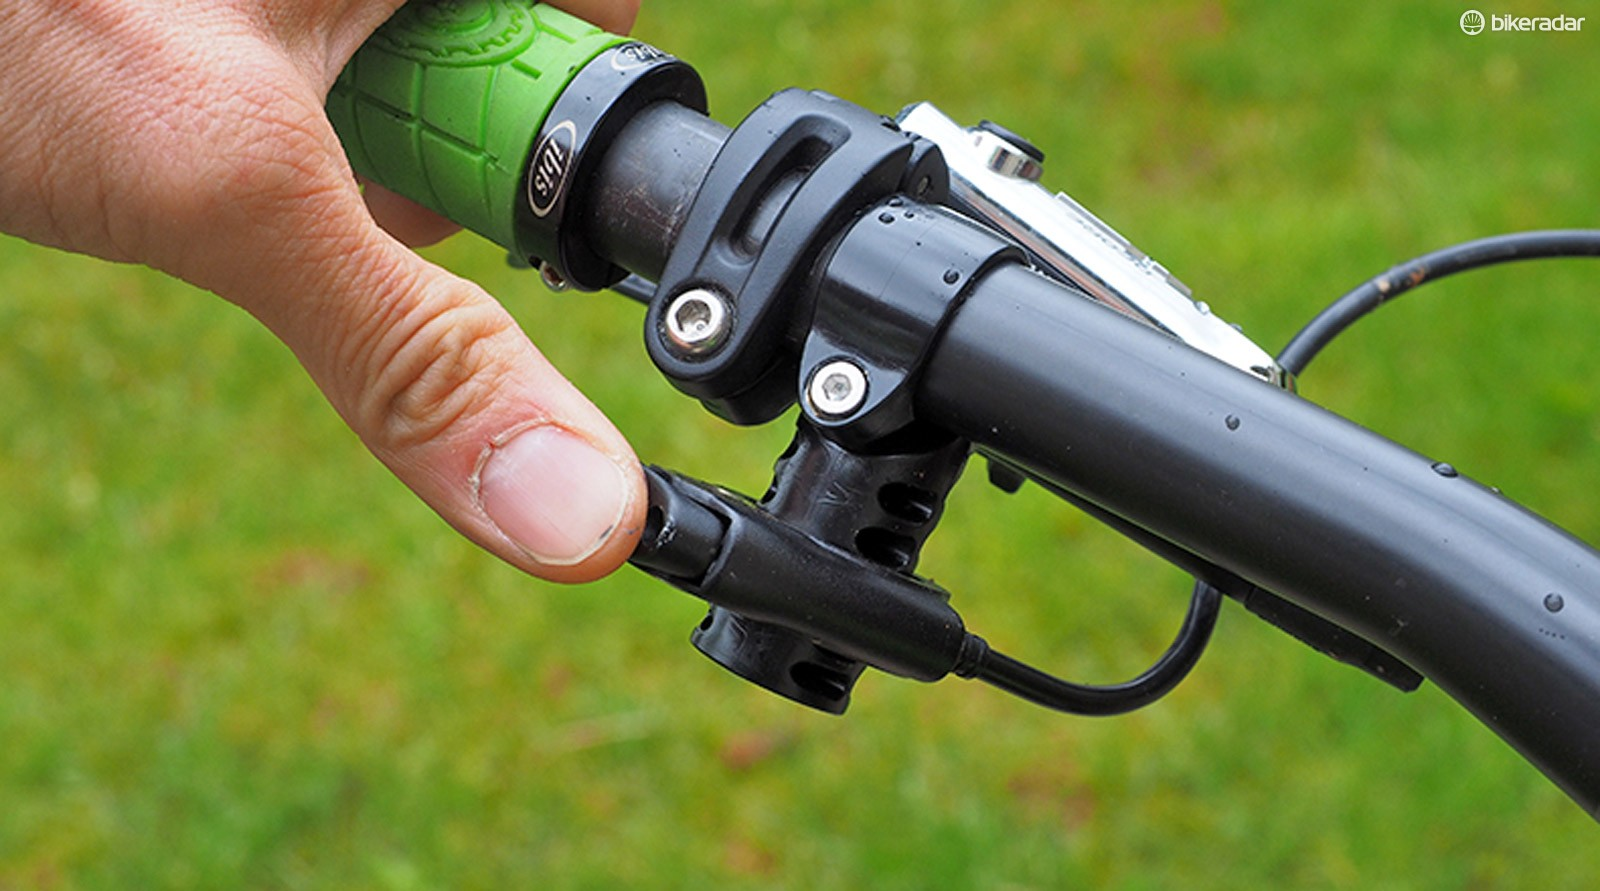 The Lindarets ReMount repositions your current dropper seatpost remote lever for much improved fit and ergonomics